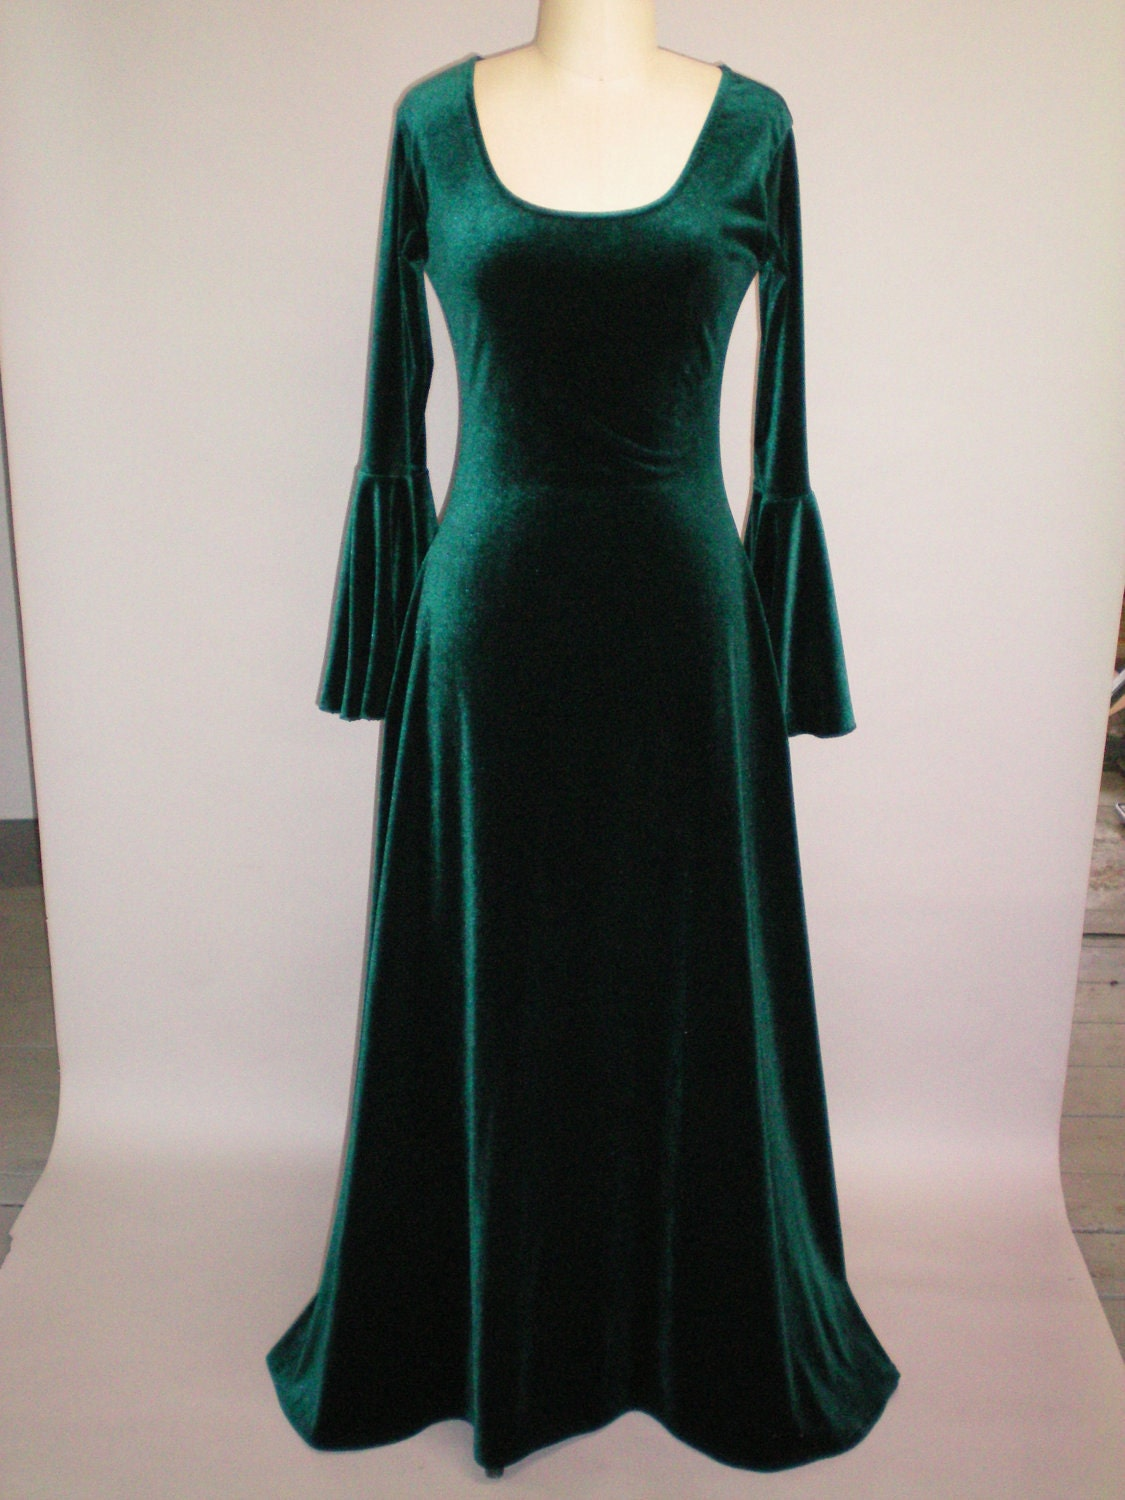 Medieval Renaissance Scoop Neck Dress Green By